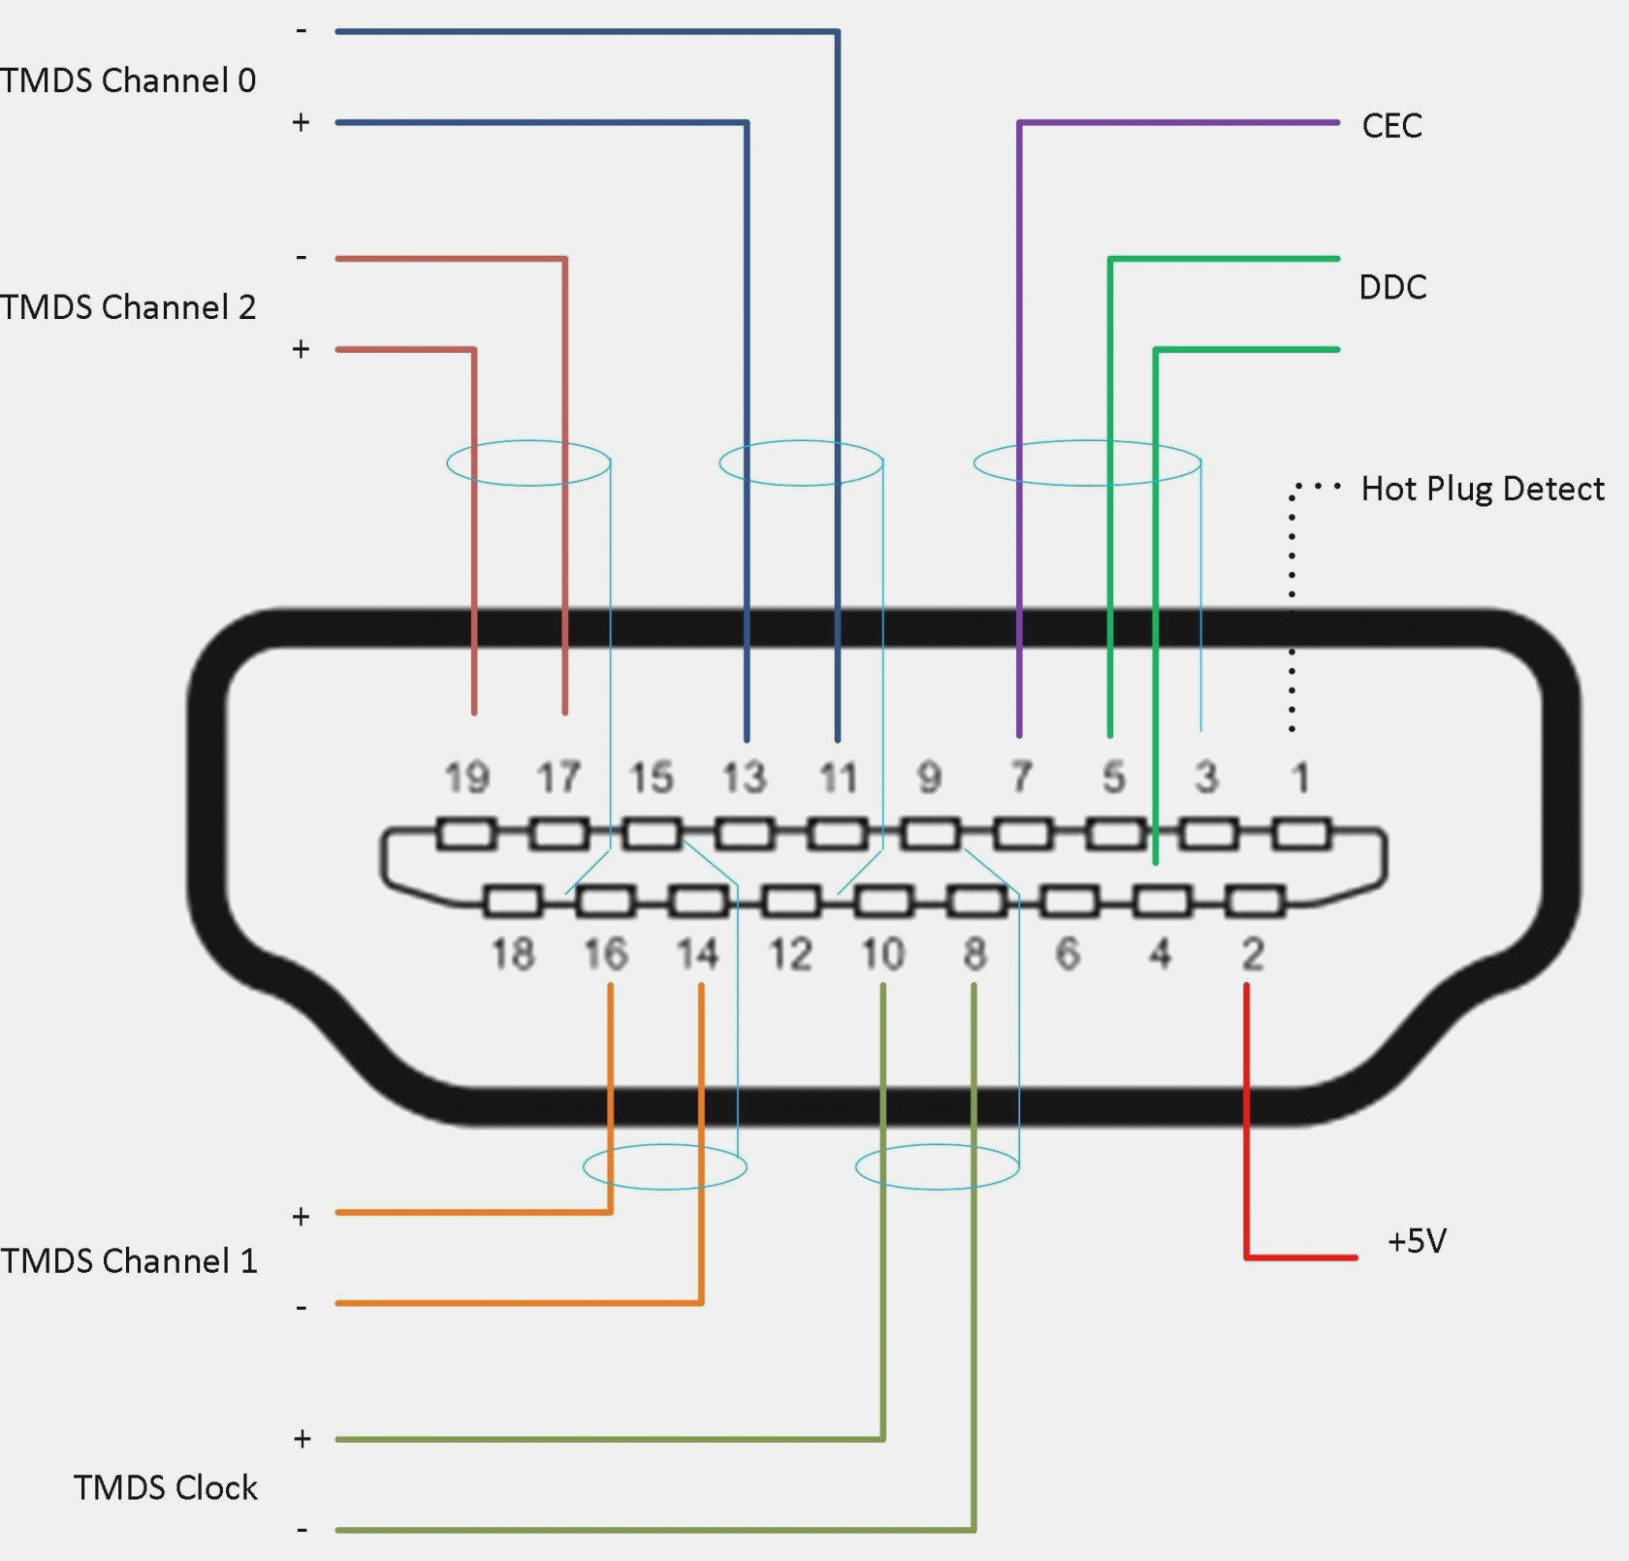 Rca Wire Diagram | Wiring Diagram - Hdmi To Rca Cable Wiring Diagram